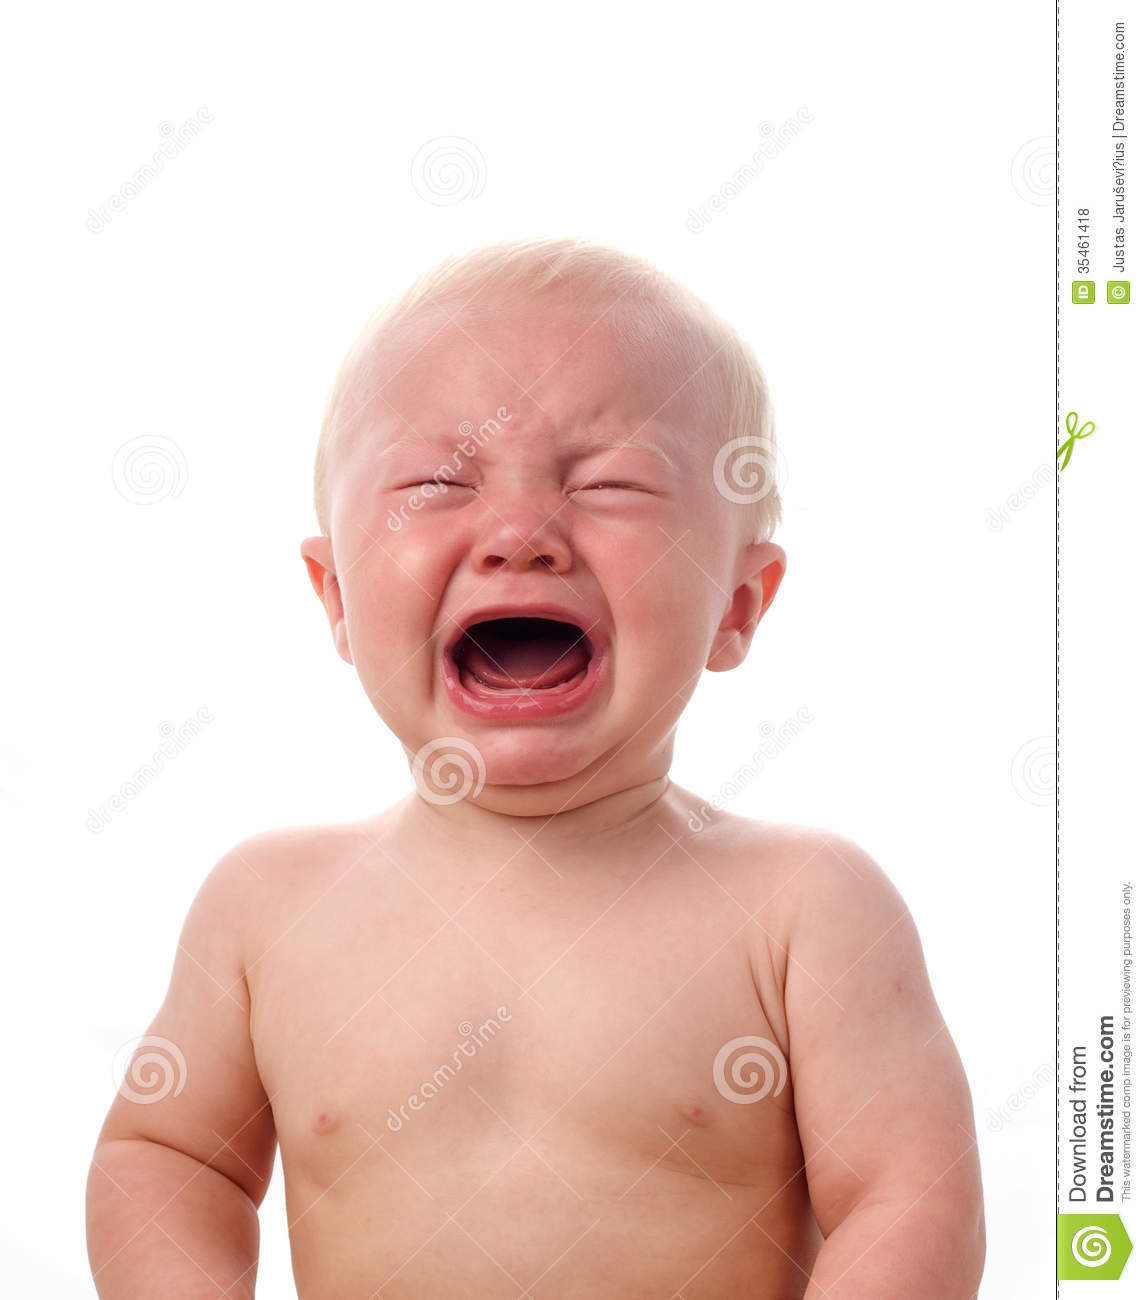 crying-baby-boy-isolated-white-35461418.